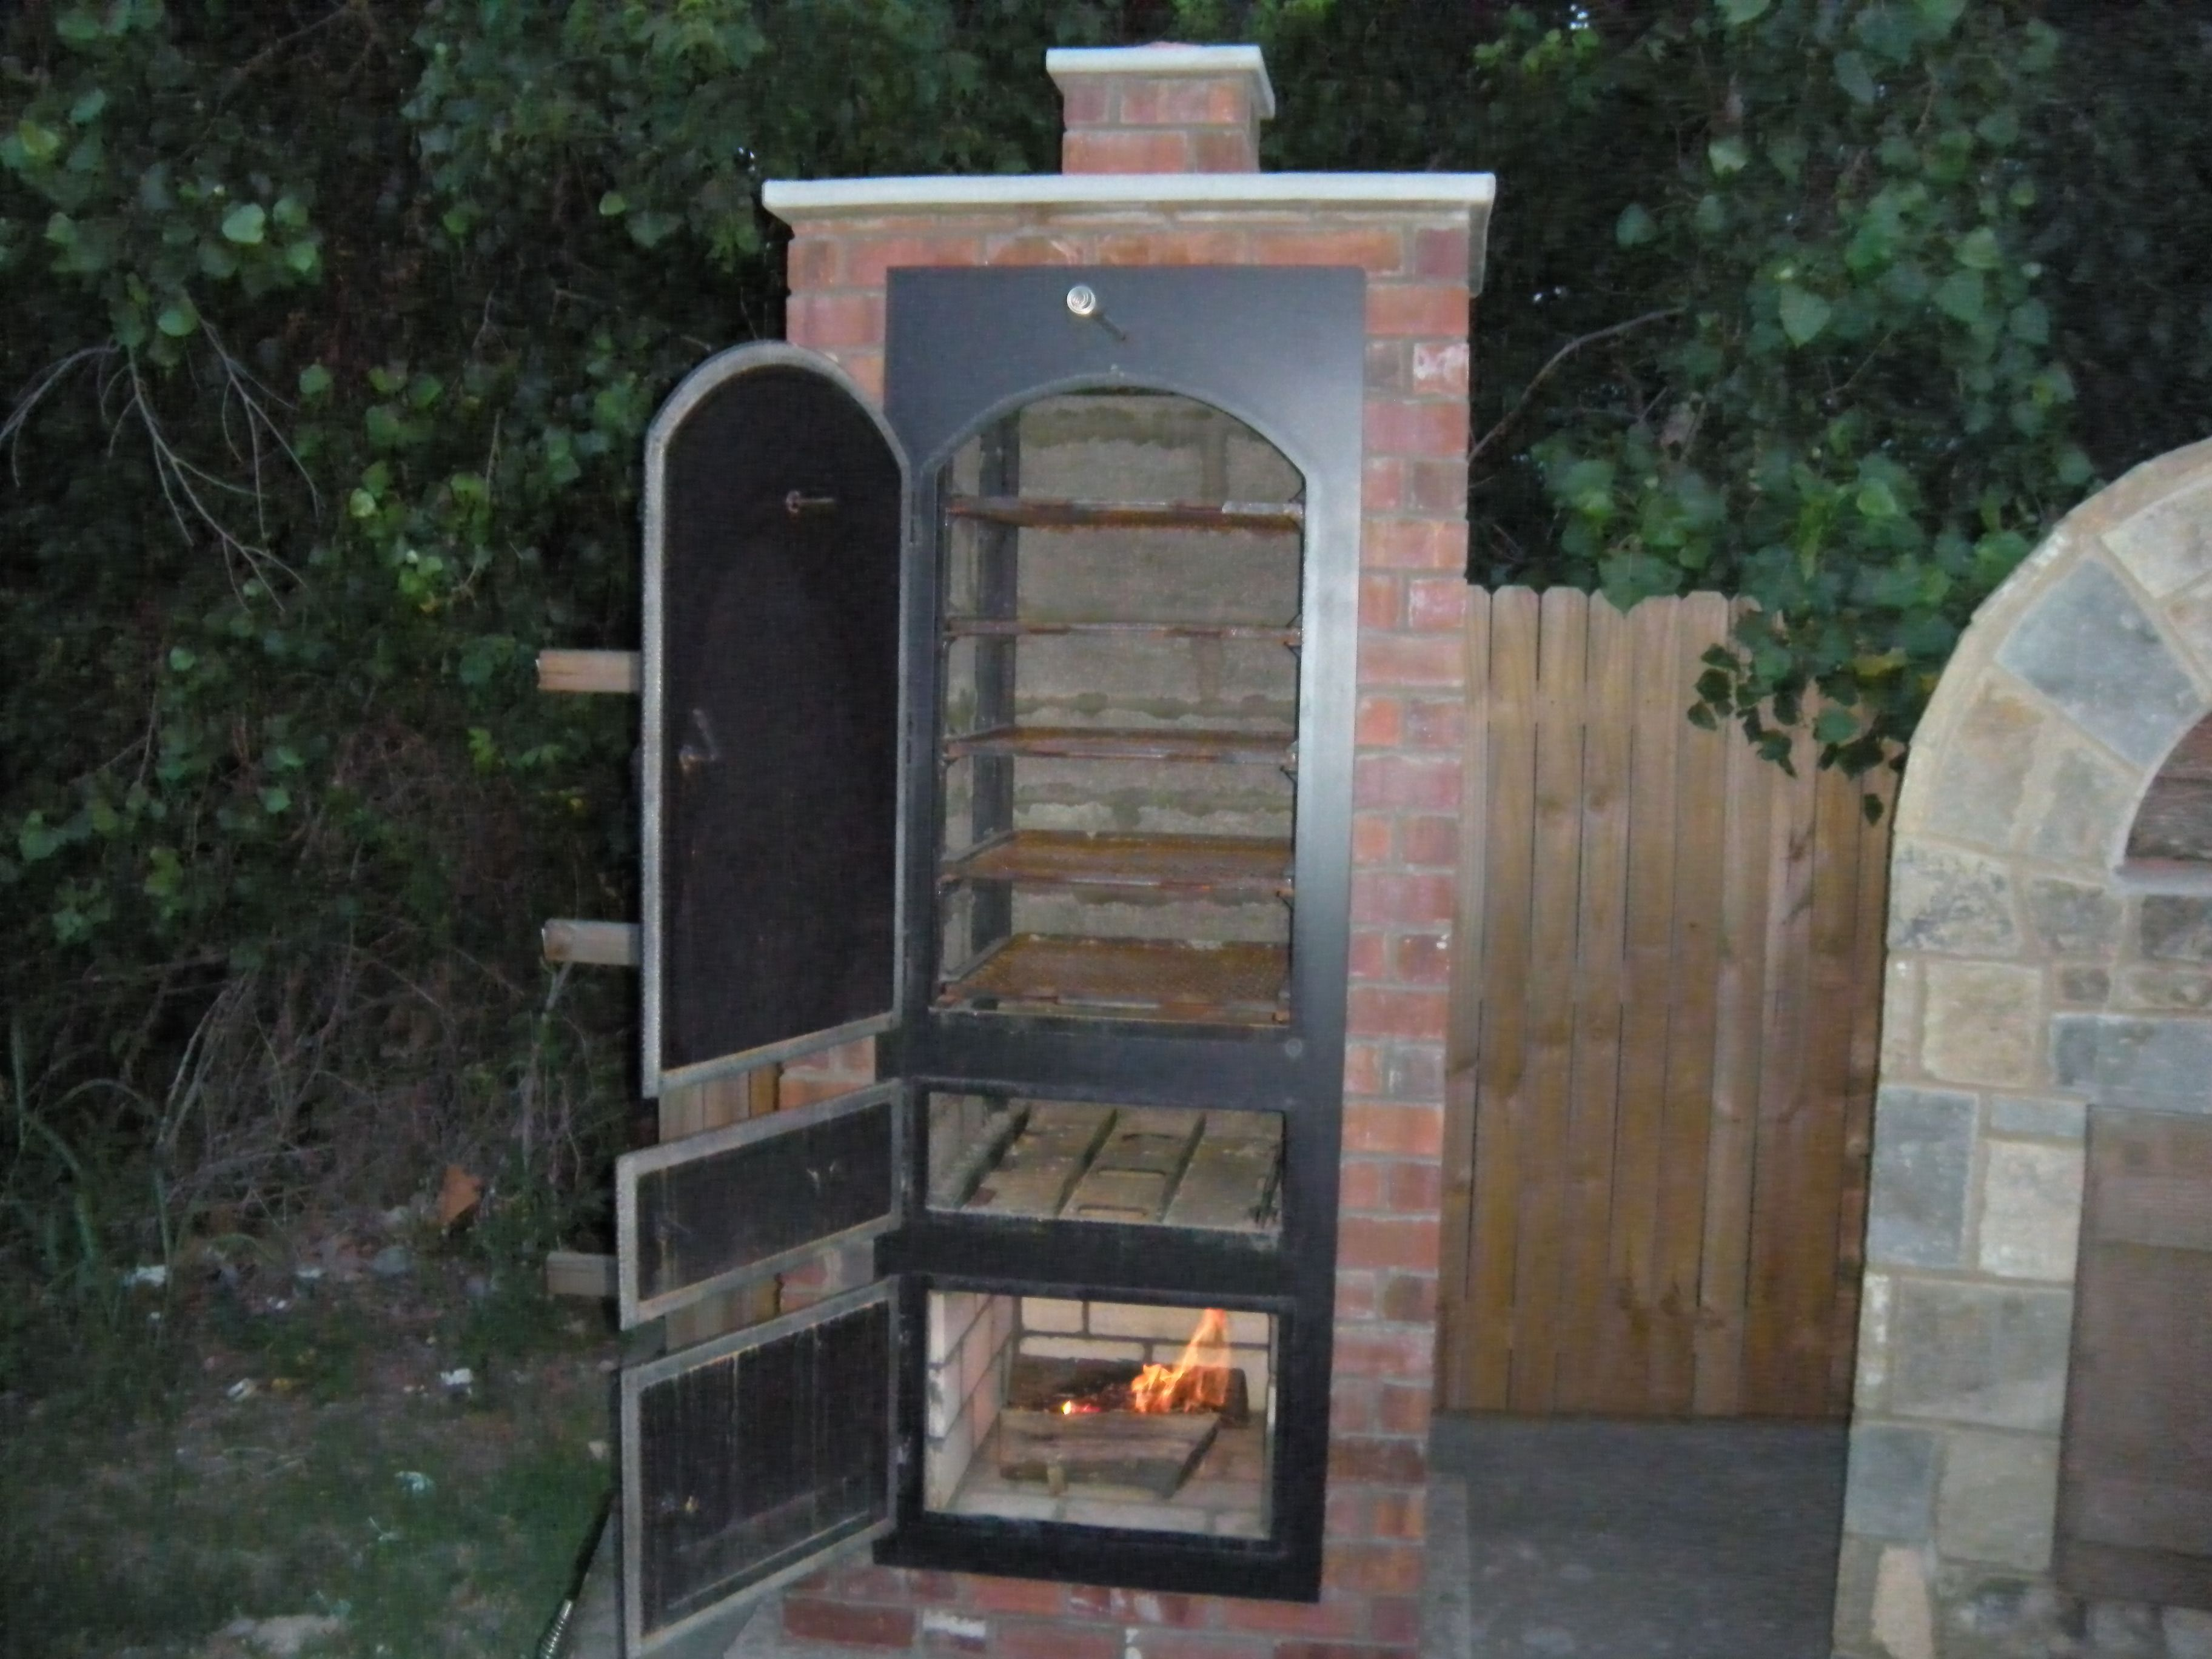 Stone age manufacturing big pig cabinet smoker under the stars